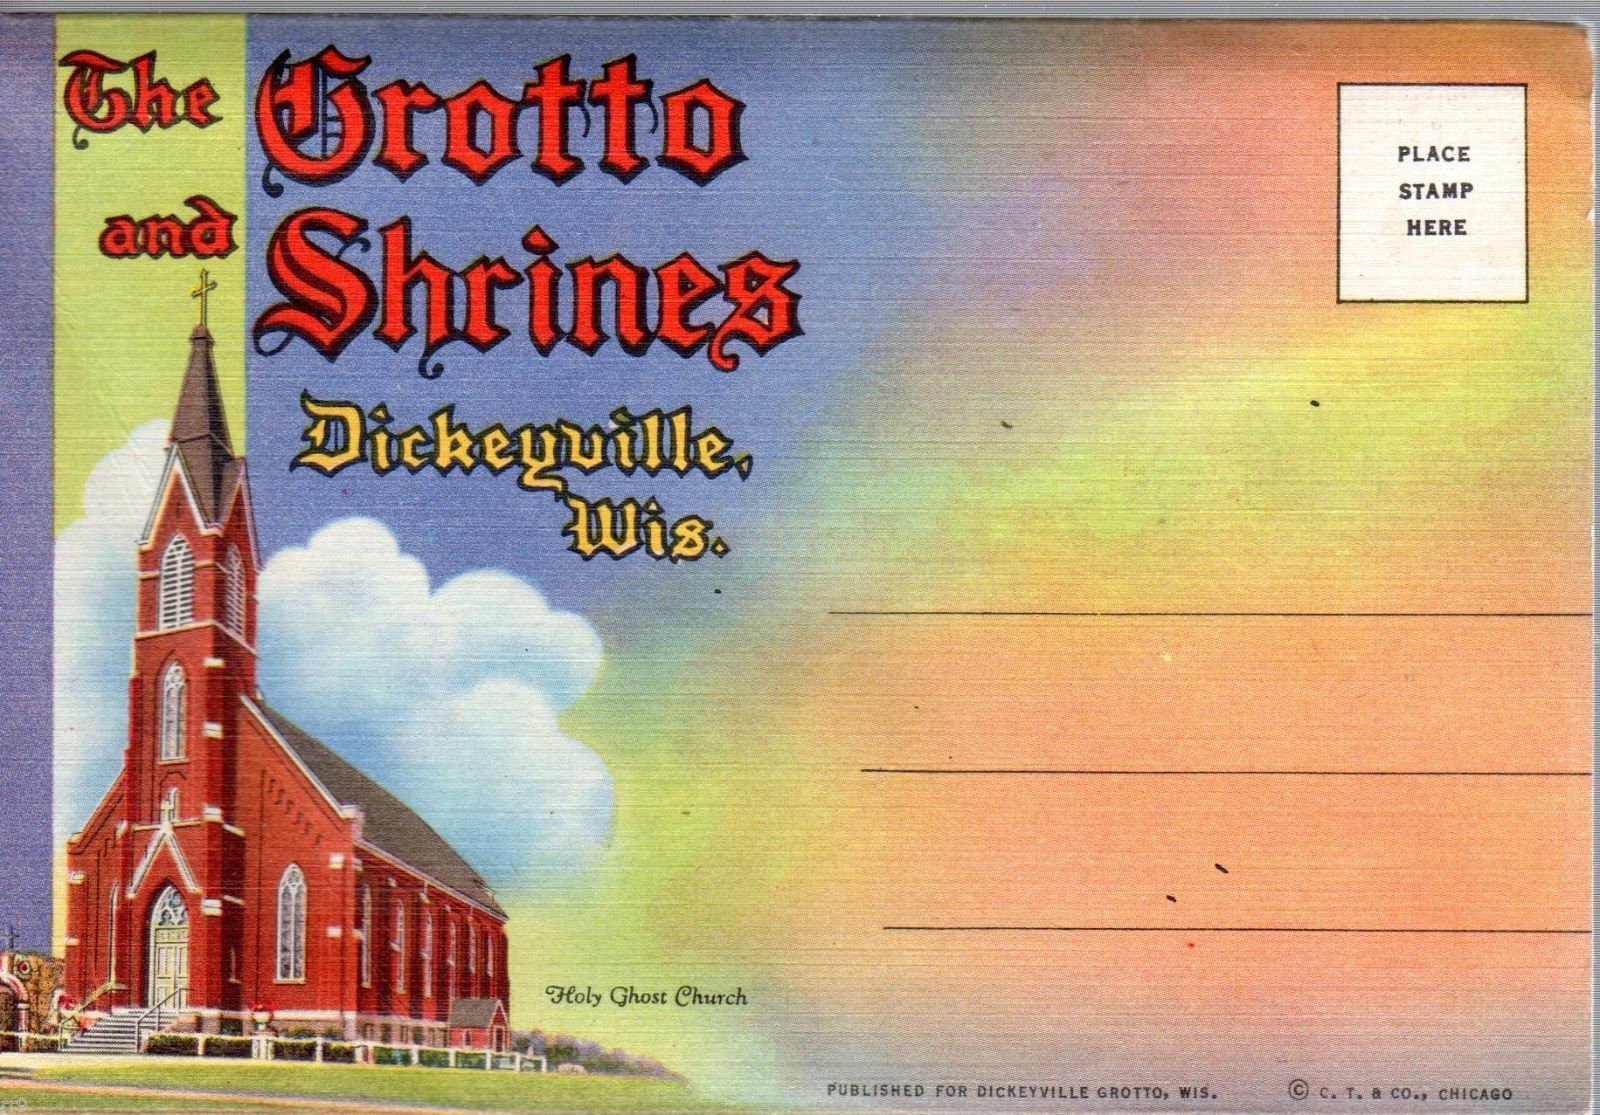 Primary image for The Grotto and Shrines Dickeyville, Wis. Souvenir Fold Out Pictures Postcards